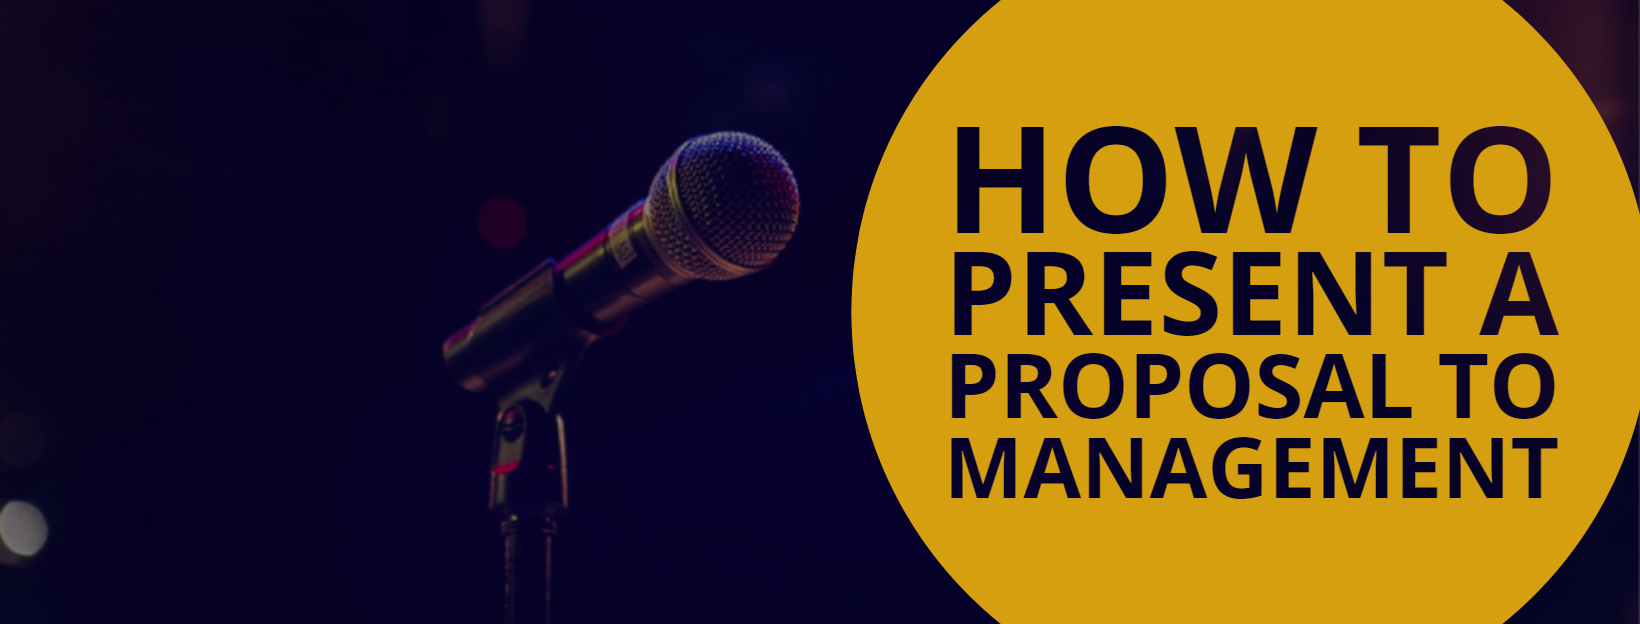 How to Present a Proposal to Management